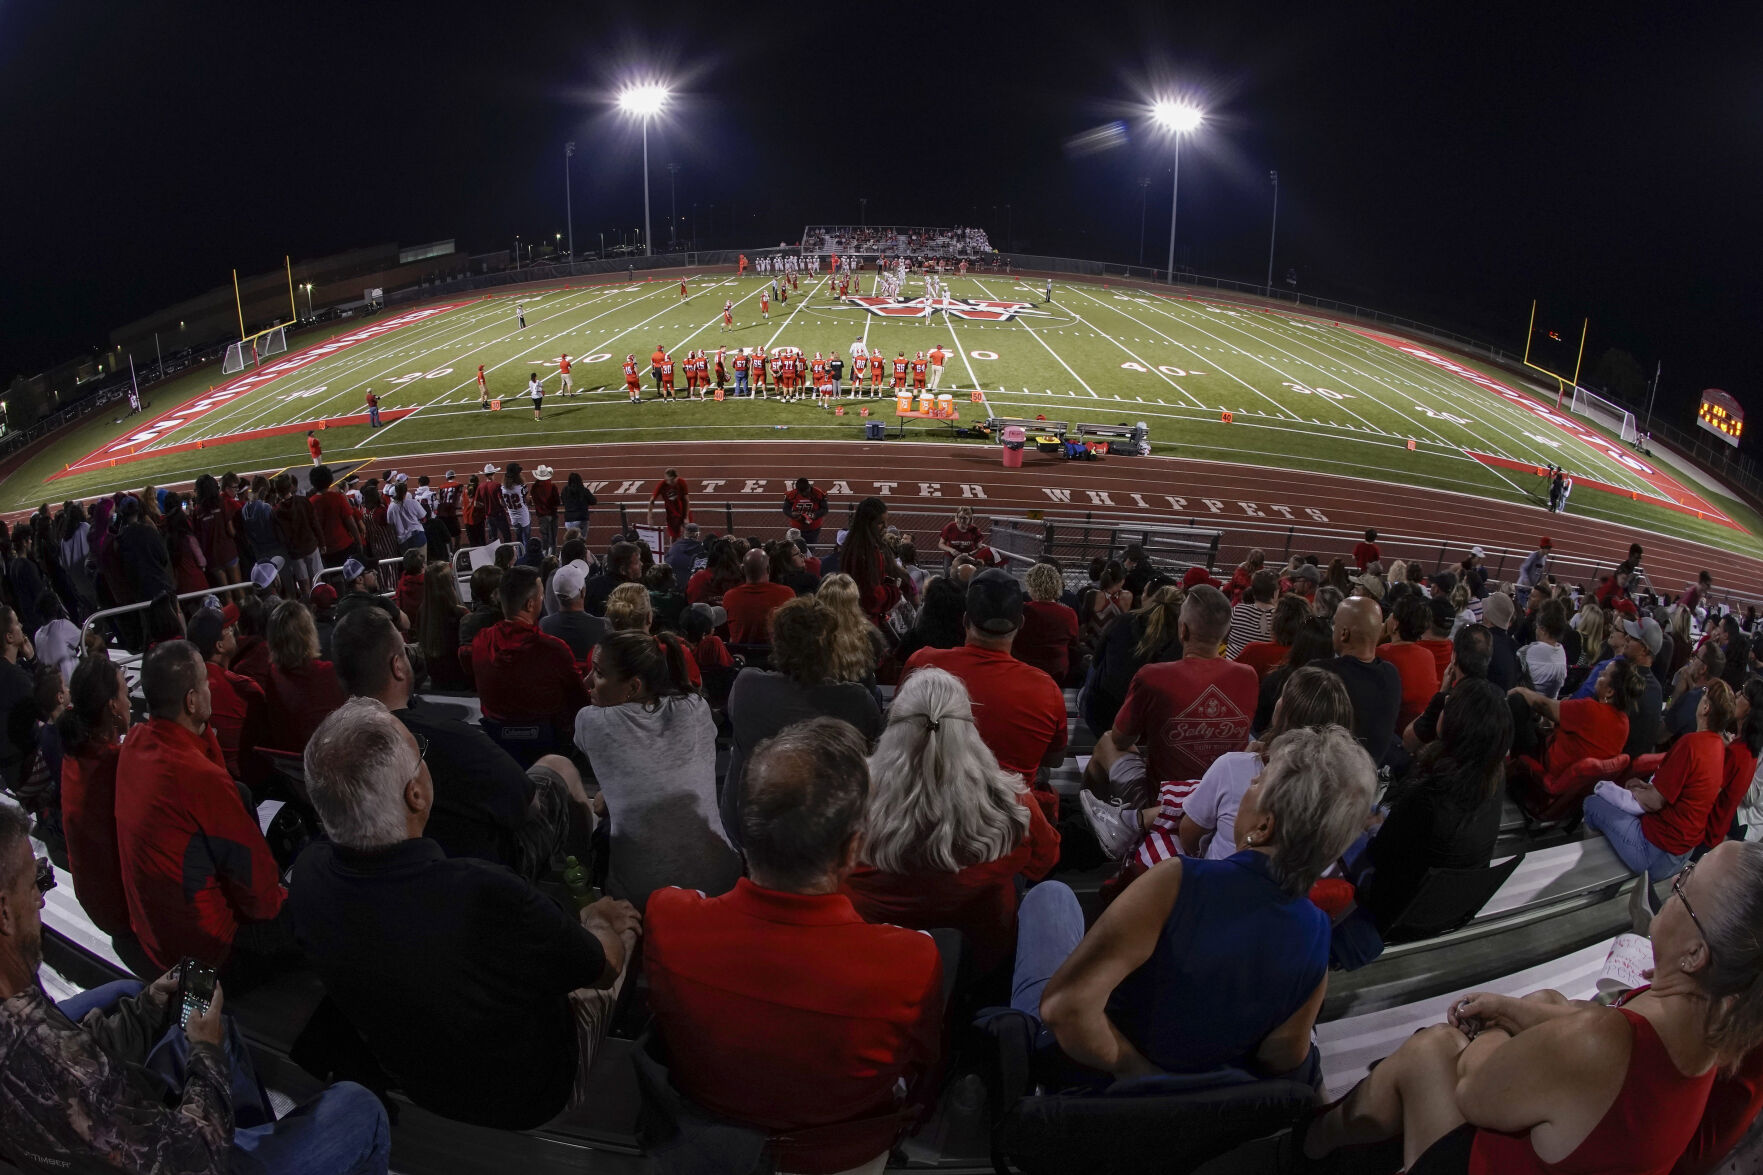 <p>Fans fill the stadium at the football field at Whitewater High School on Friday, Oct. 1, 2021, in Whitewater, Wis. A growing number of school districts in the U.S. are using federal pandemic funding on athletics projects.</p>